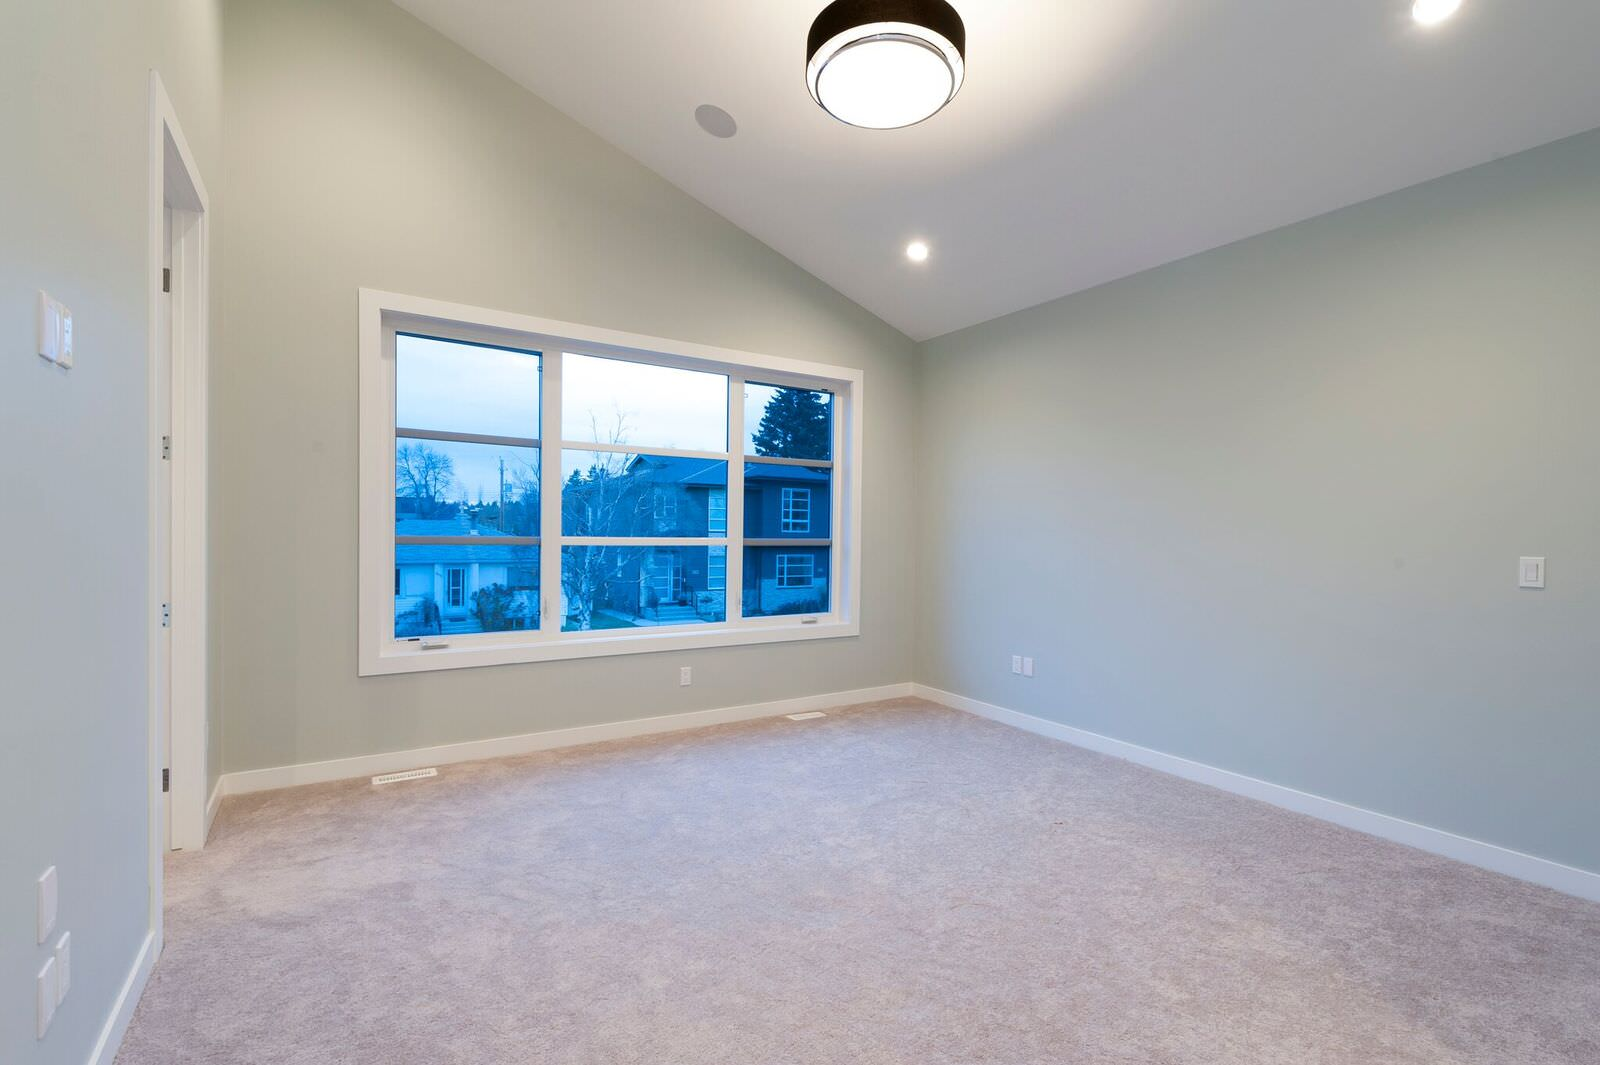 Before-Virtual Staging For A Cozy Bedroom